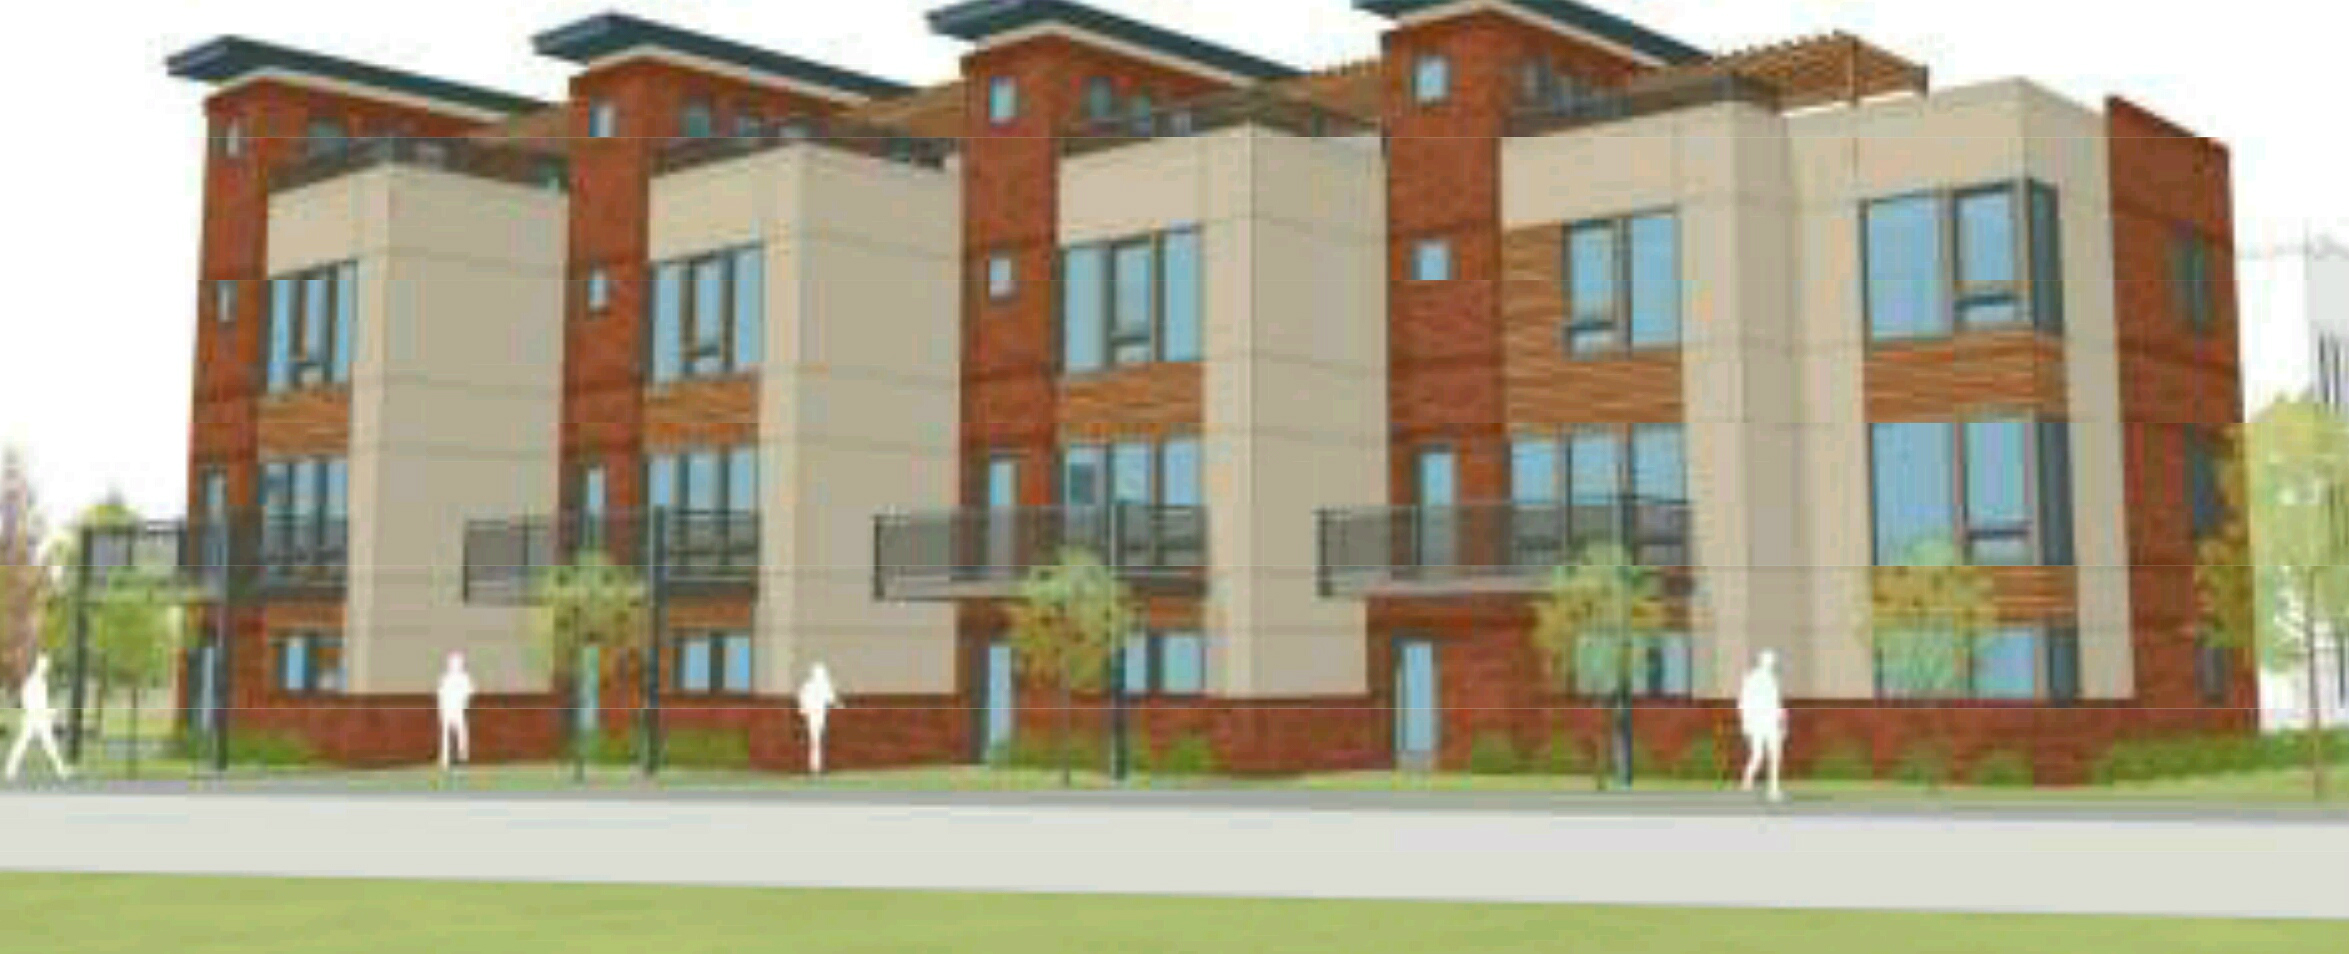 Contemporary Townhomes Planned for STL's Skinker-DeBaliviere Neighborhood